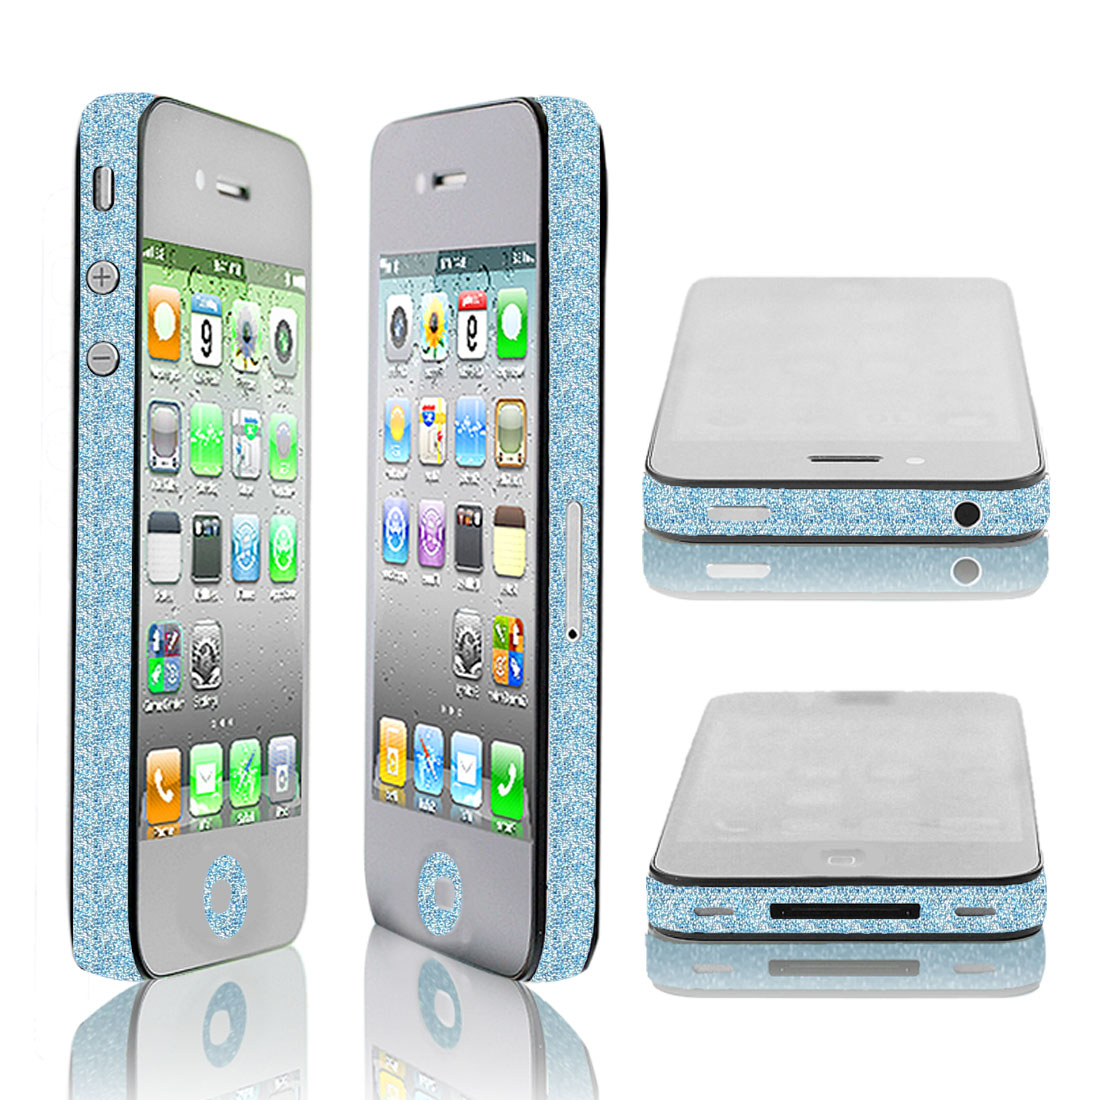 Shiny Sky Blue Edge Wrap Sticker Decal Decor for Apple iPhone 4 4G 4S 4GS